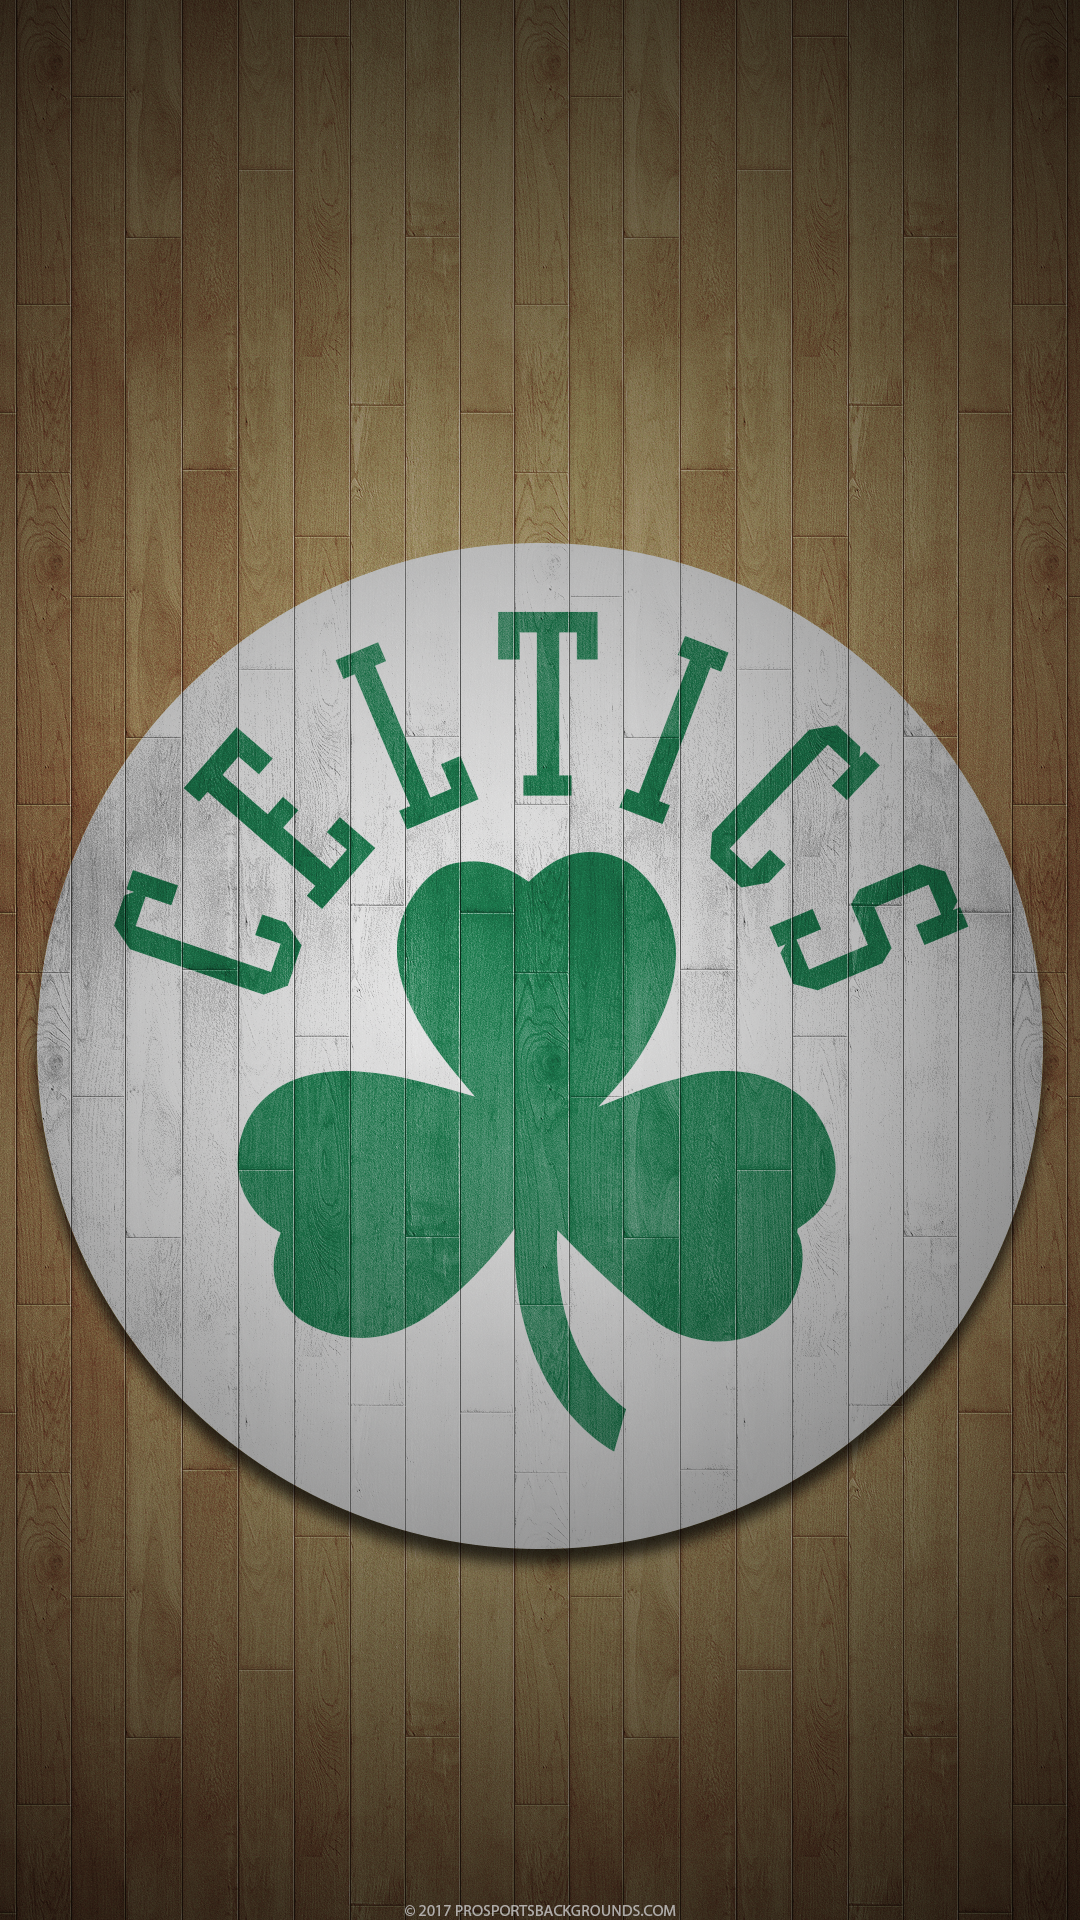 Boston celtics wallpaper image by Xris on NBA Boston